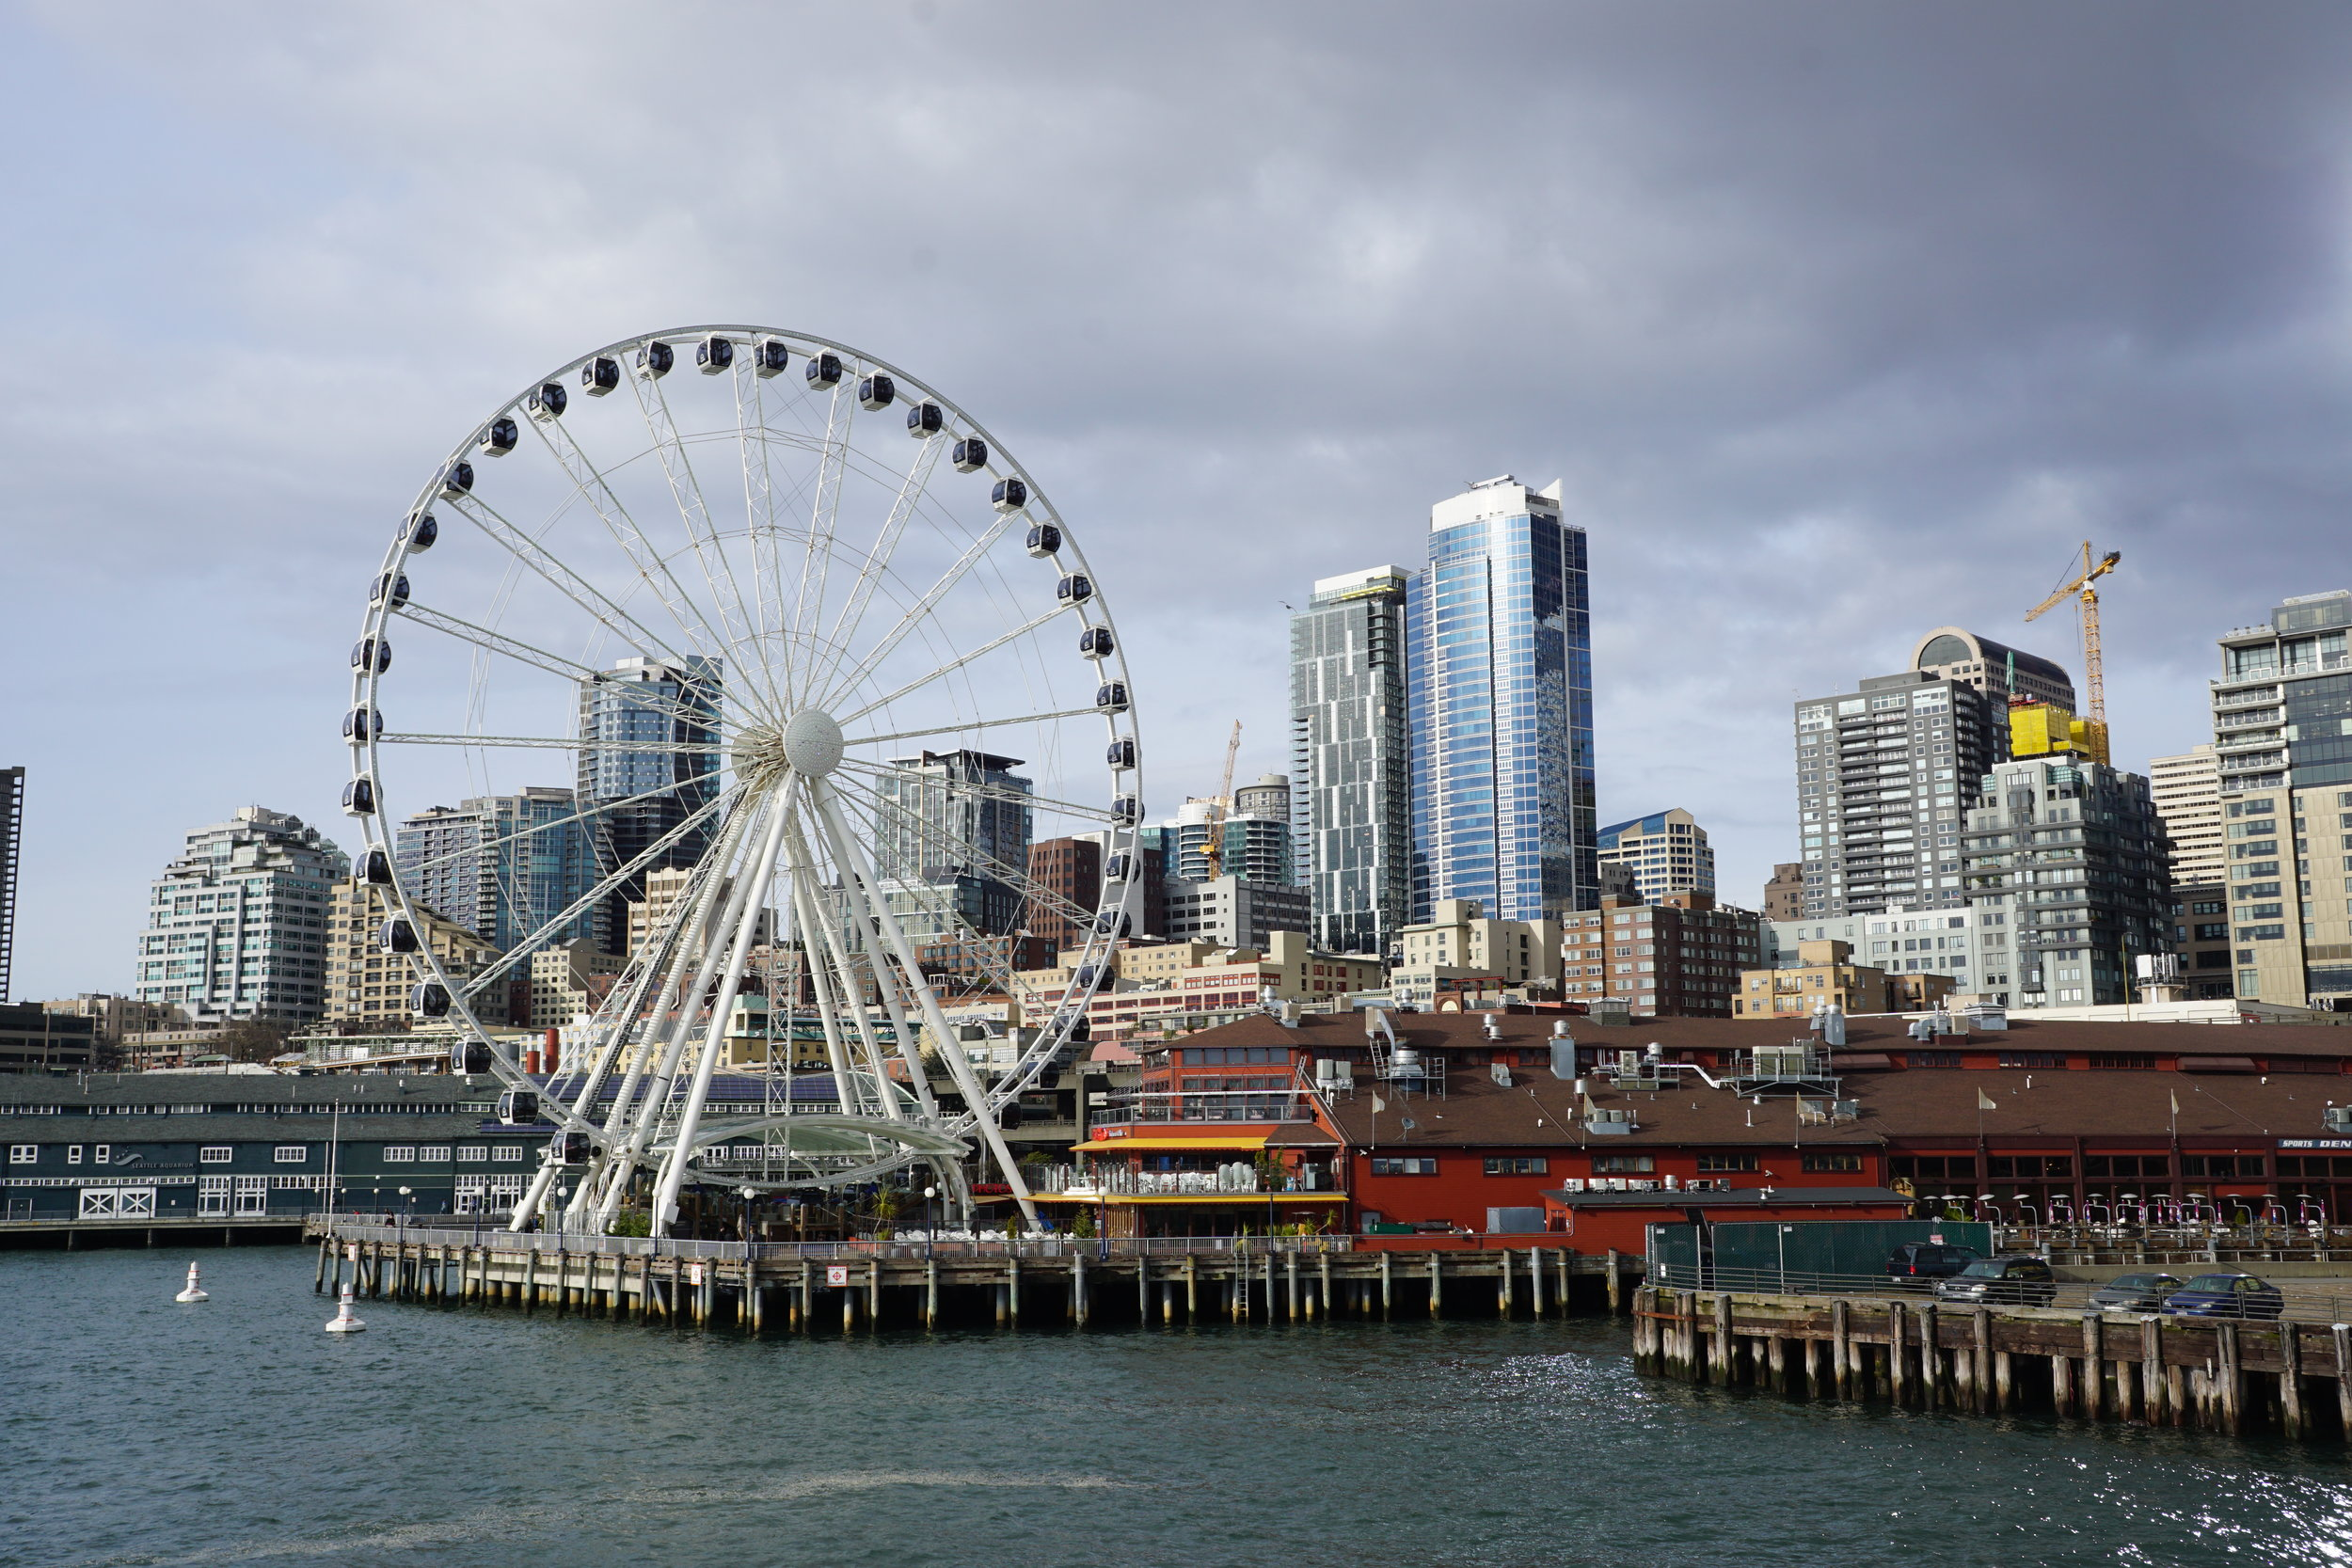 """""""Ferris Wheel"""" Photo taken by Calvin Harjono -The Argosys Cruise is an hour long guided boat tour of Seattle. It goes around the entire perimeter of the pier with a narration of historical and significant points of Seattle. This is super awesome for those who want to learn about the history of Seattle while getting a full view of the beautiful city!"""